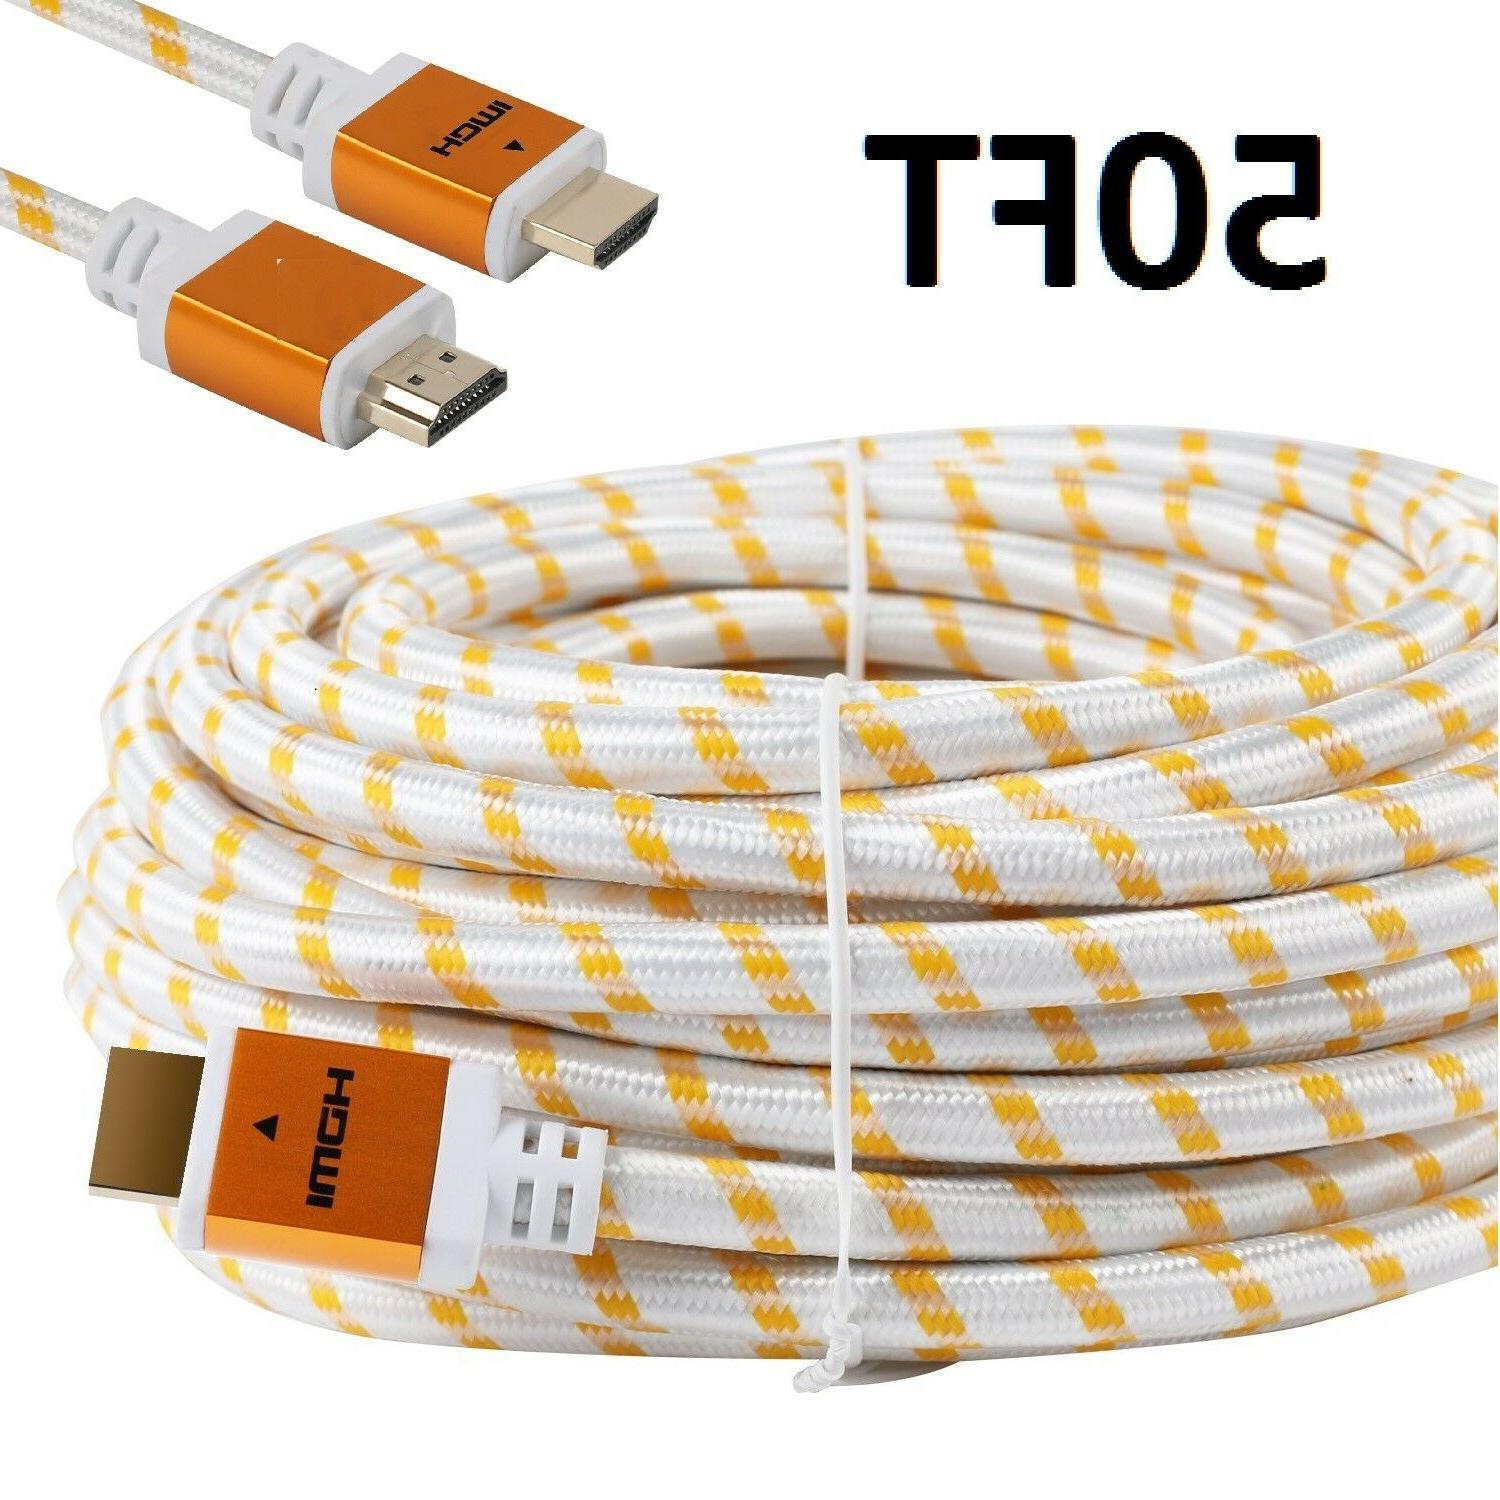 premium hdmi cable 50ft for 3d dvd